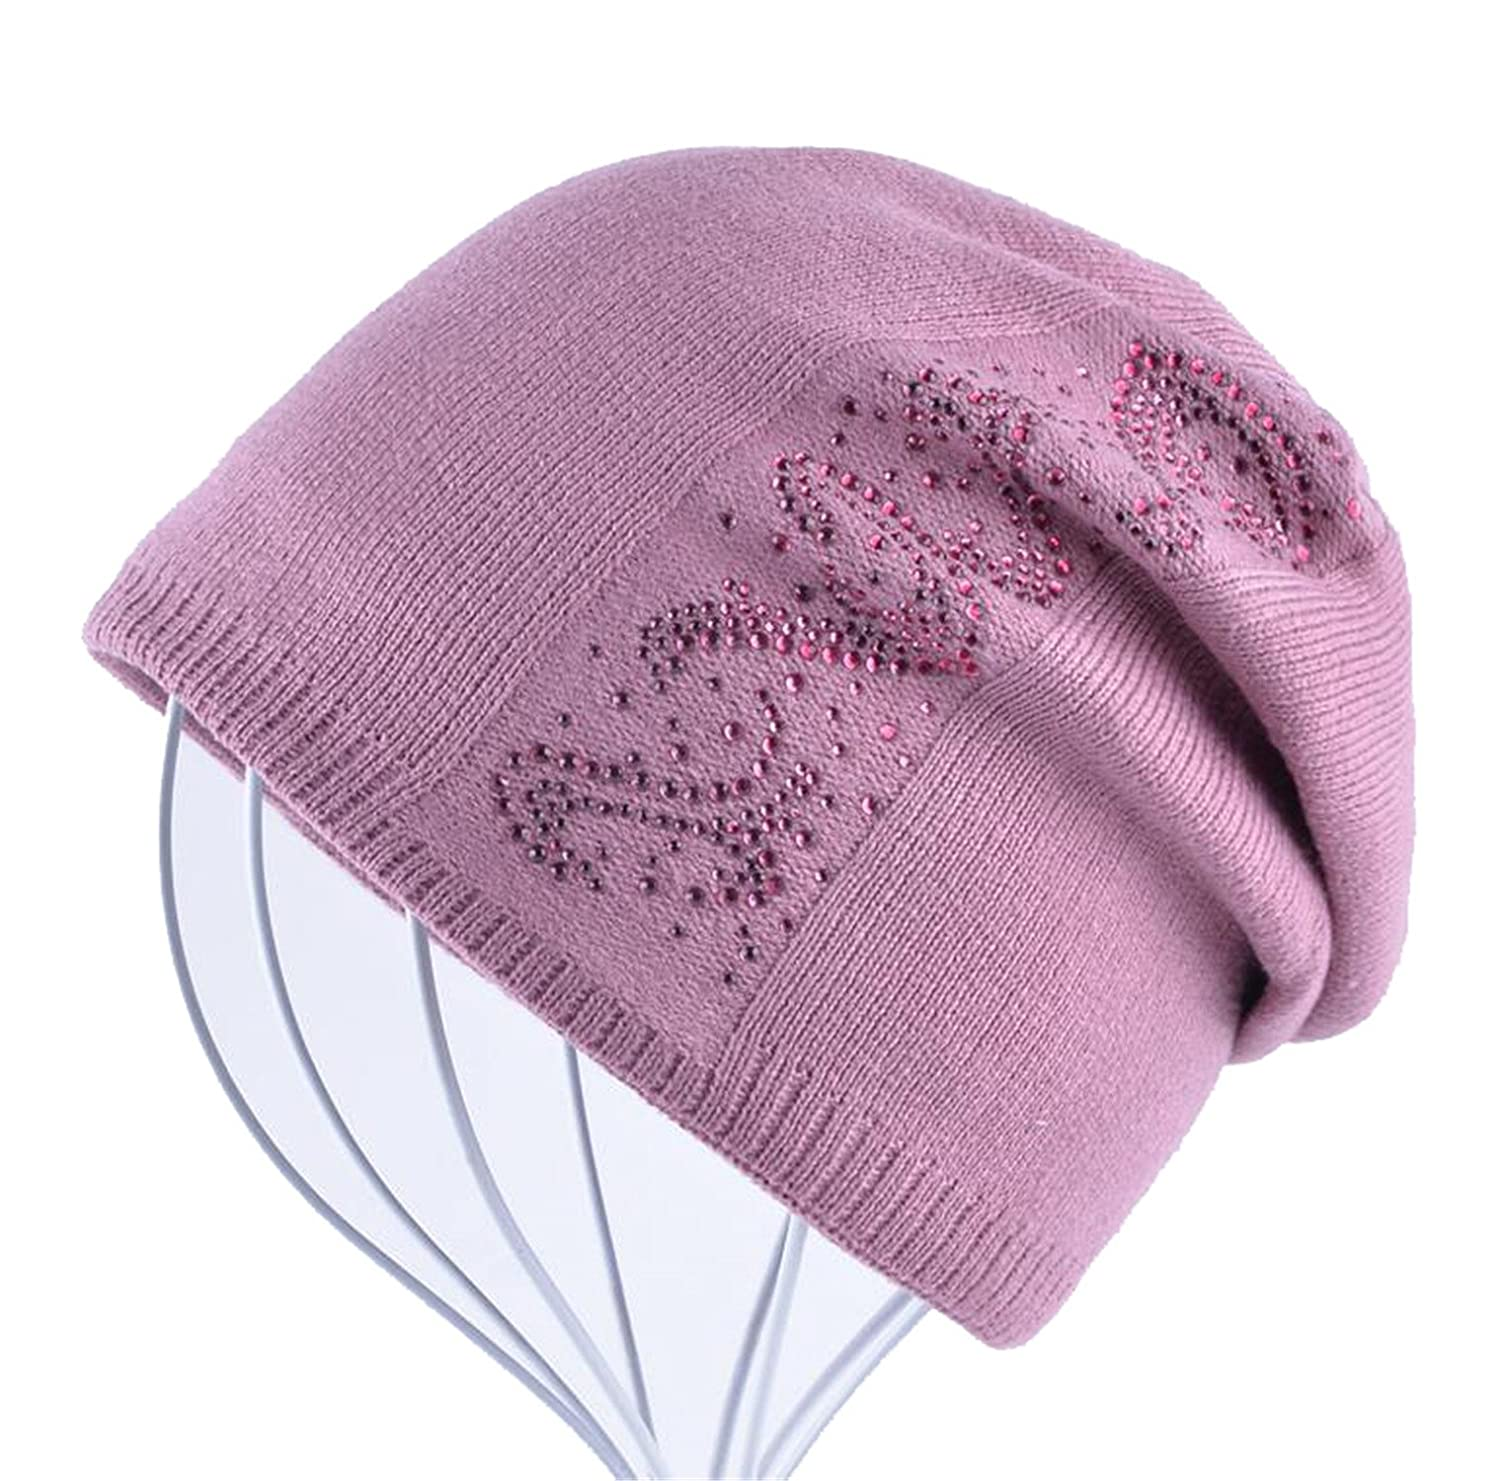 Susan1999 Rhinestone Solid Knitted Beanie Caps Women Beanies Bonnet hiver Bonnets Girls Hat